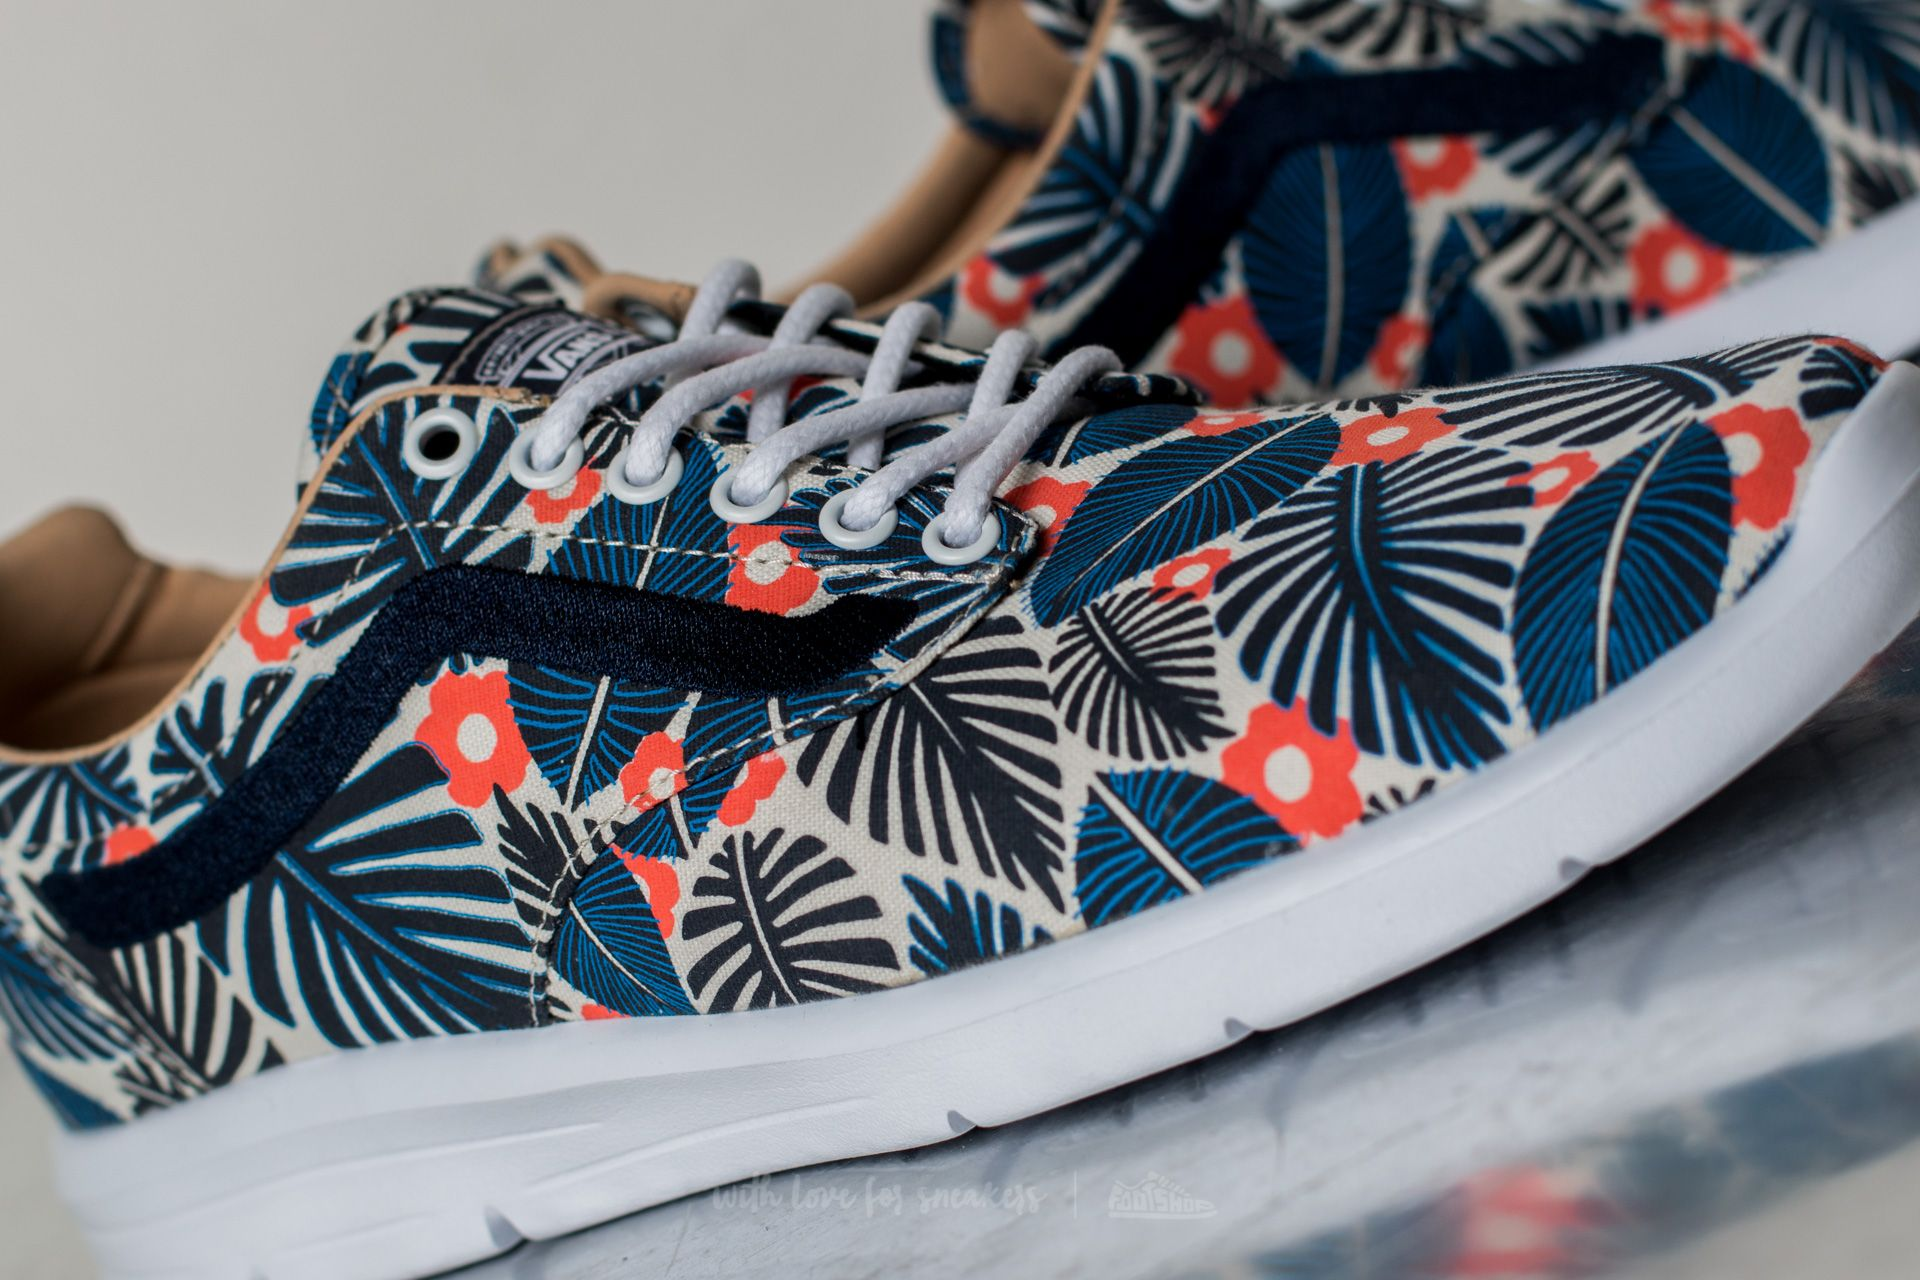 Vans Iso 1.5 + (TROPICAL) Multicolor | Footshop